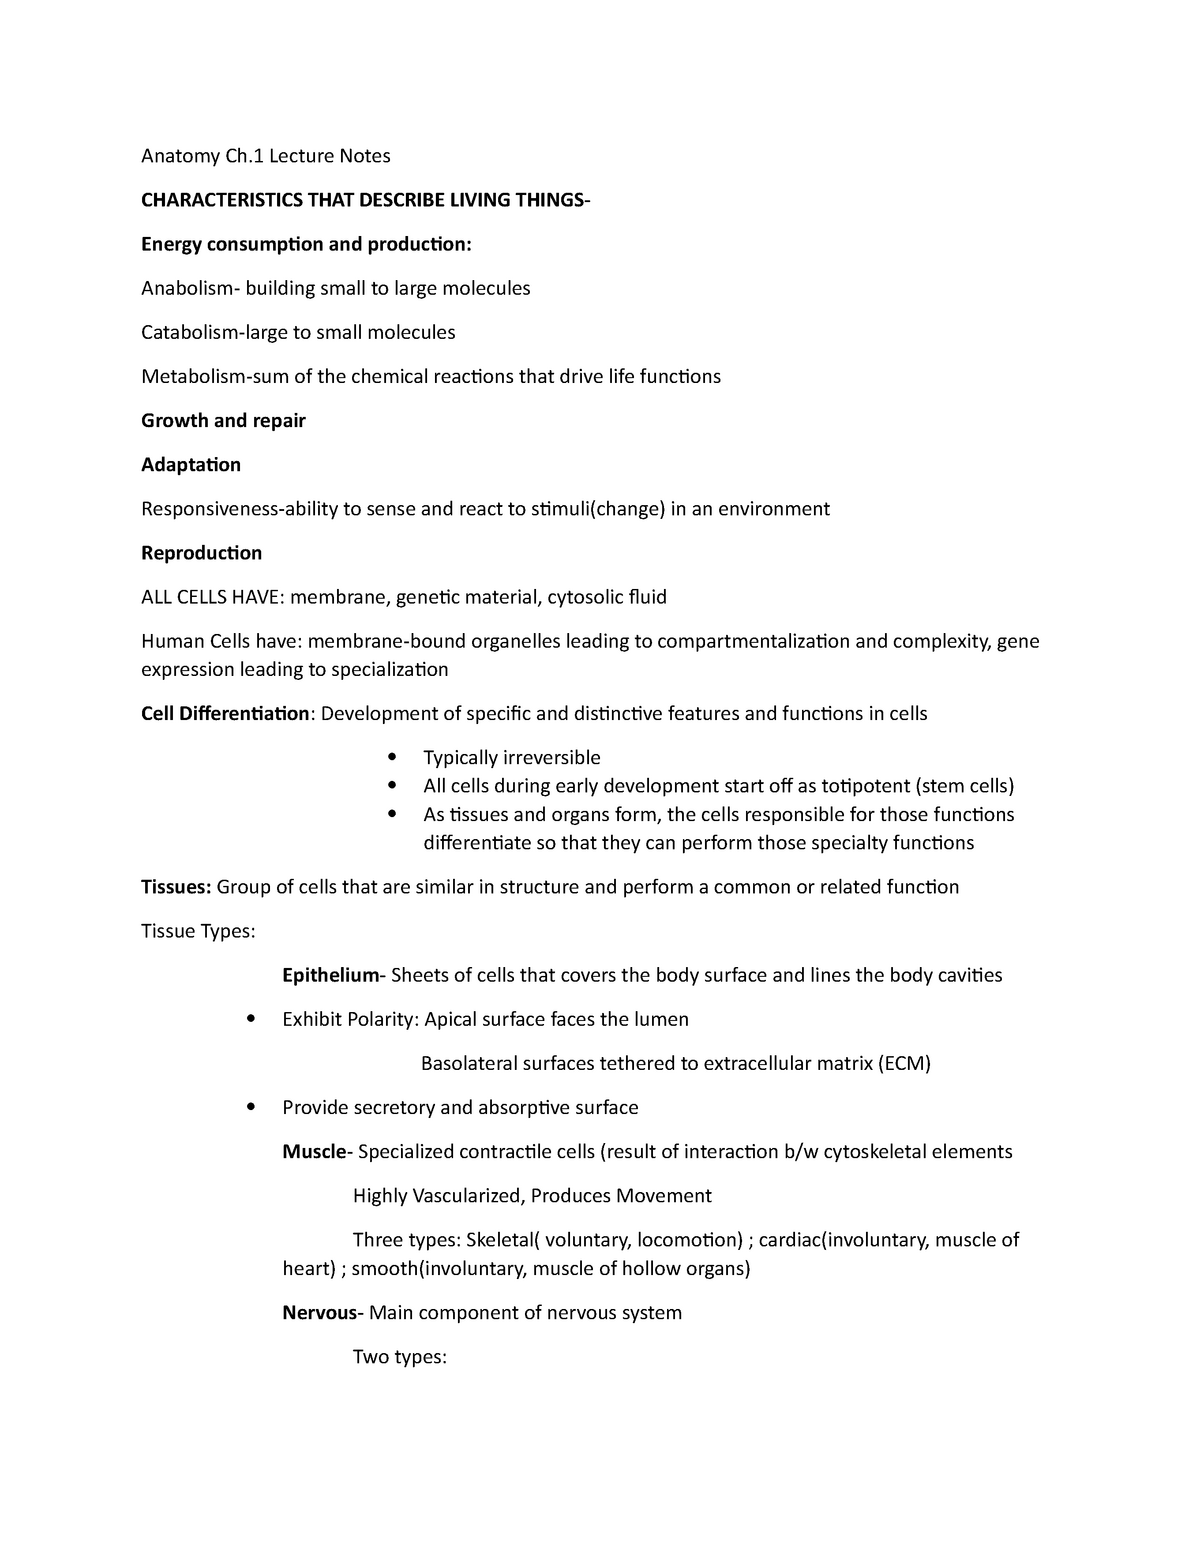 A&P CH 1 Lecture Notes - Professor Chad Wayne, University of